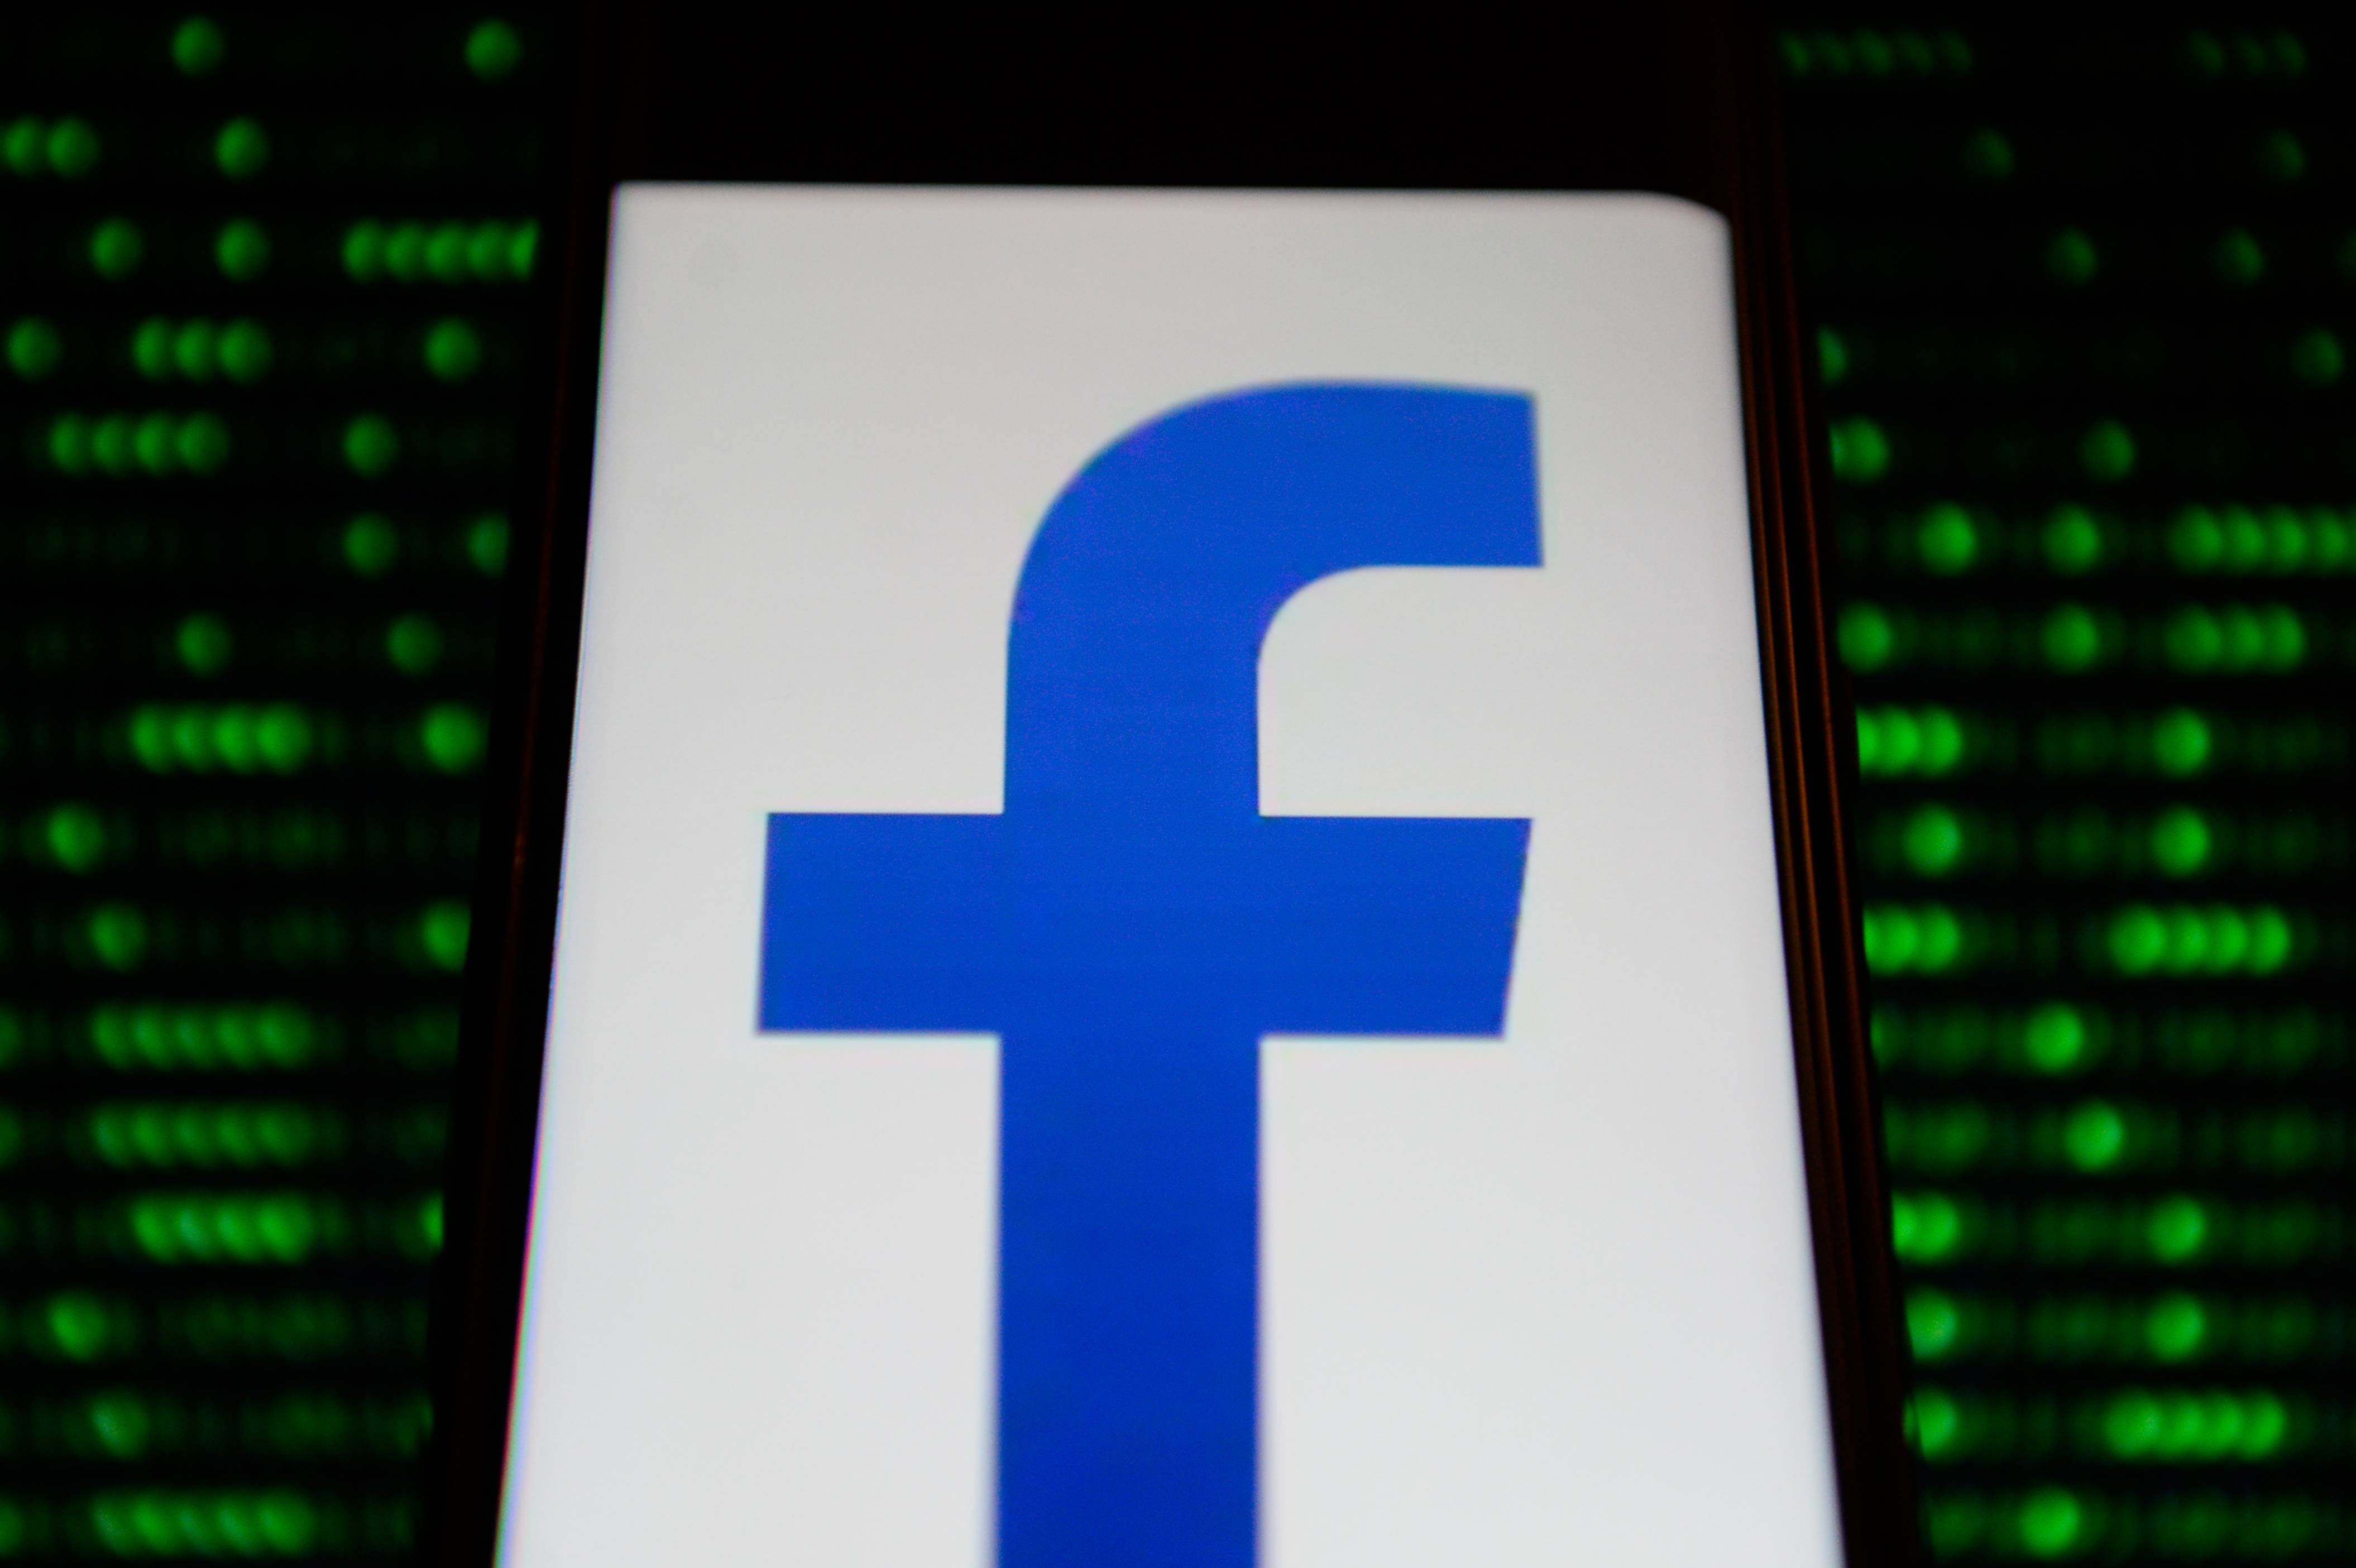 Facebook lite logo is seen in an Android mobile device